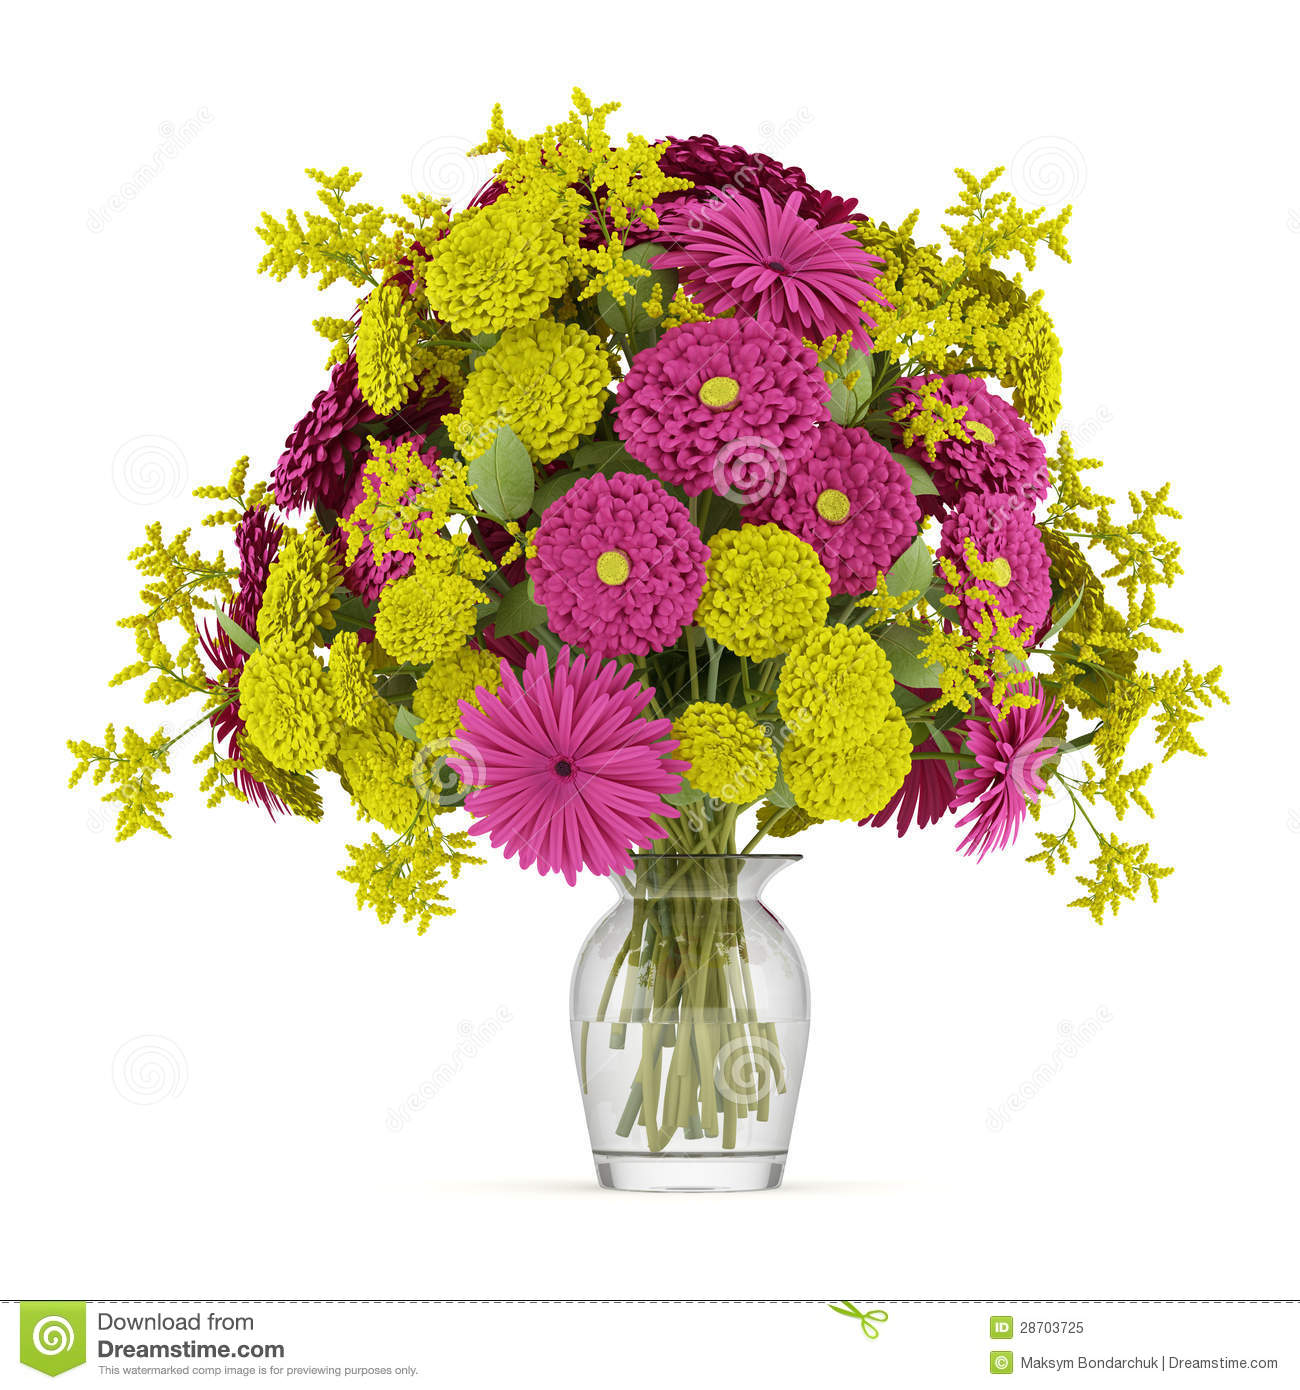 Bouquet of yellow and purple flowers in vase isolated on white stock download bouquet of yellow and purple flowers in vase isolated on white stock illustration illustration mightylinksfo